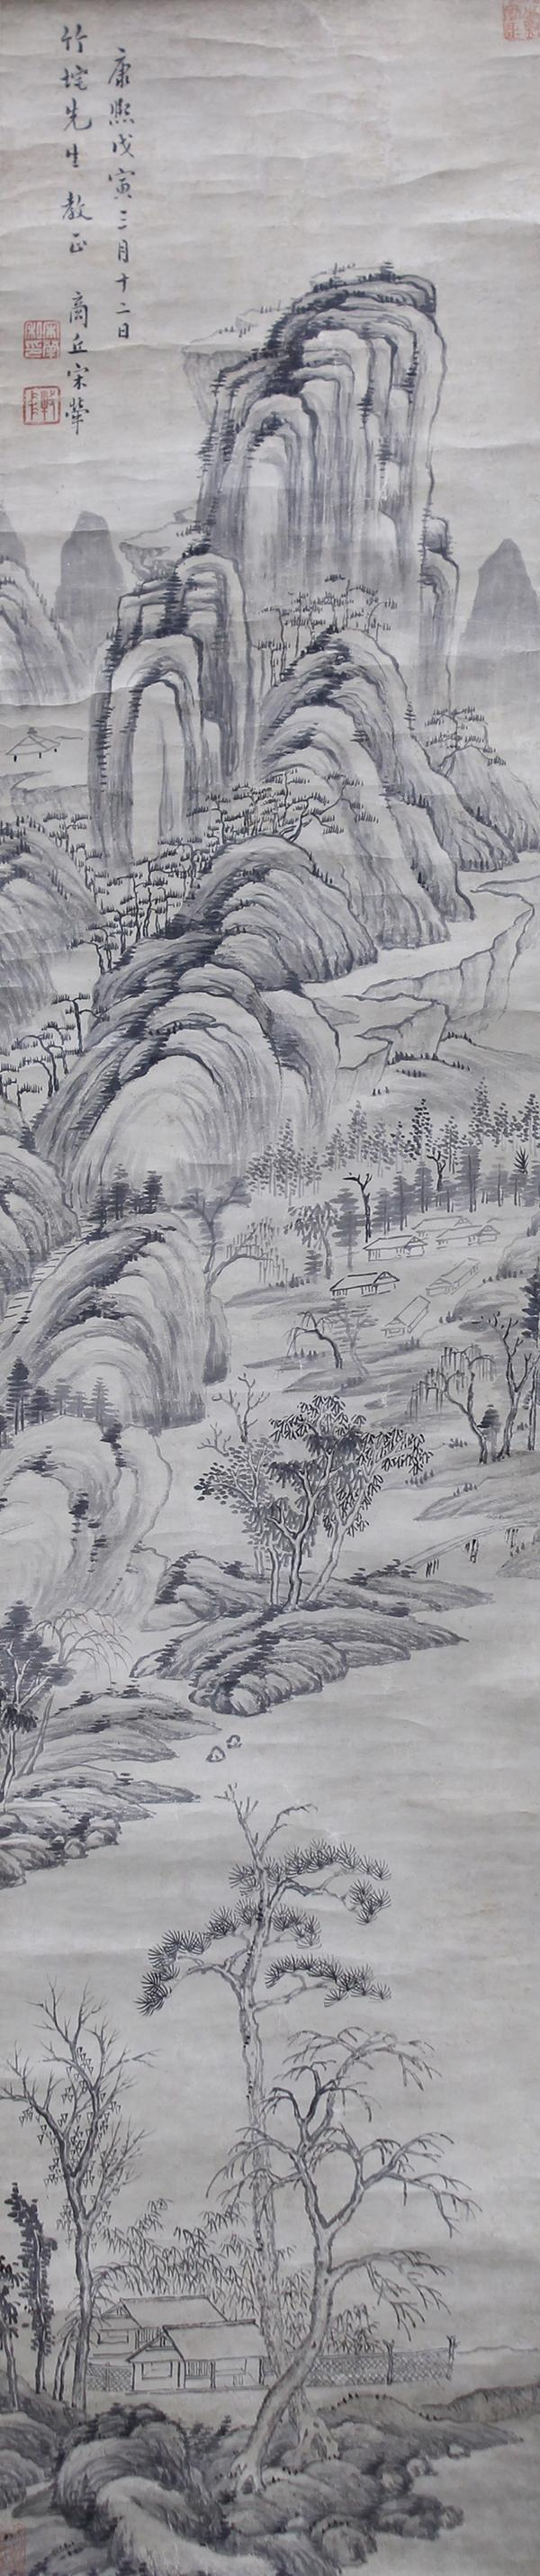 Chinese Scroll Painting, manner of Song Luo